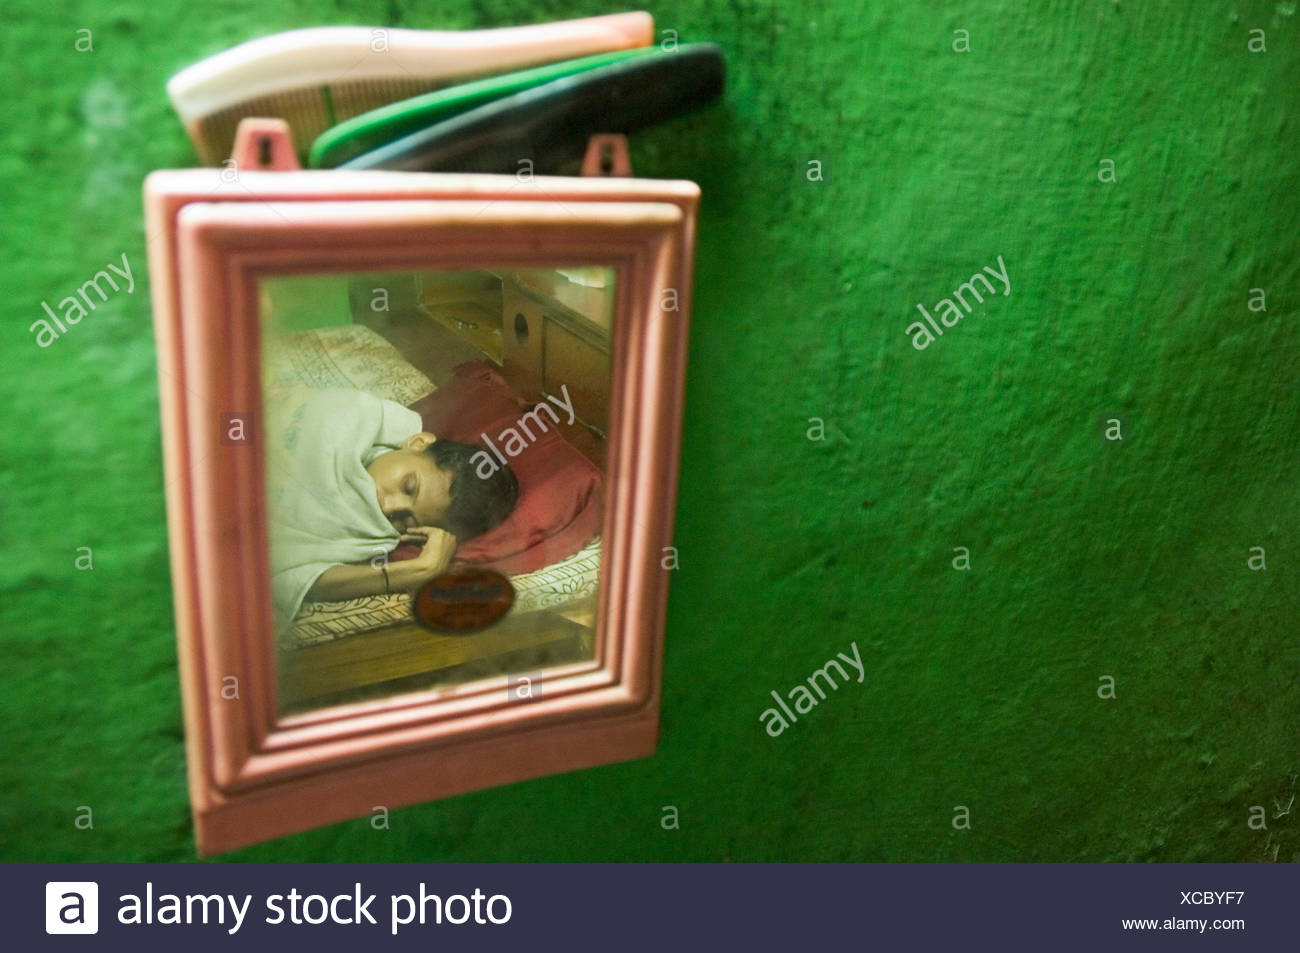 Khusbun Nessa, tuberculosis patient lying sick in her bed at home while her family cares for her, Howrah, Hooghly, West Bengal, Stock Photo